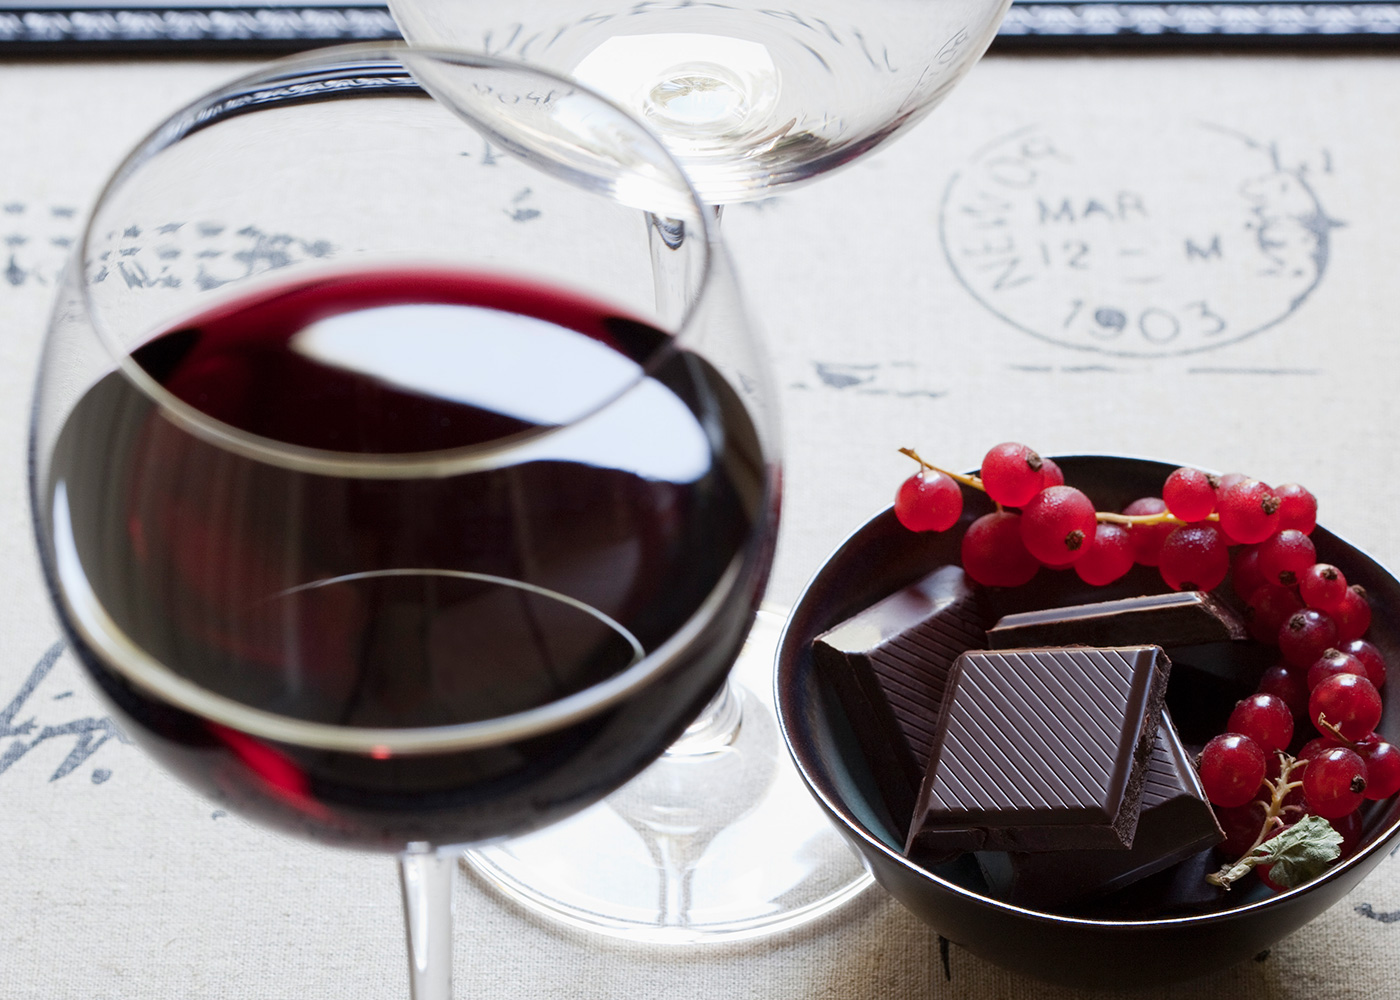 The Sirtfood Diet A Red Wine And Chocolate Diet That Works